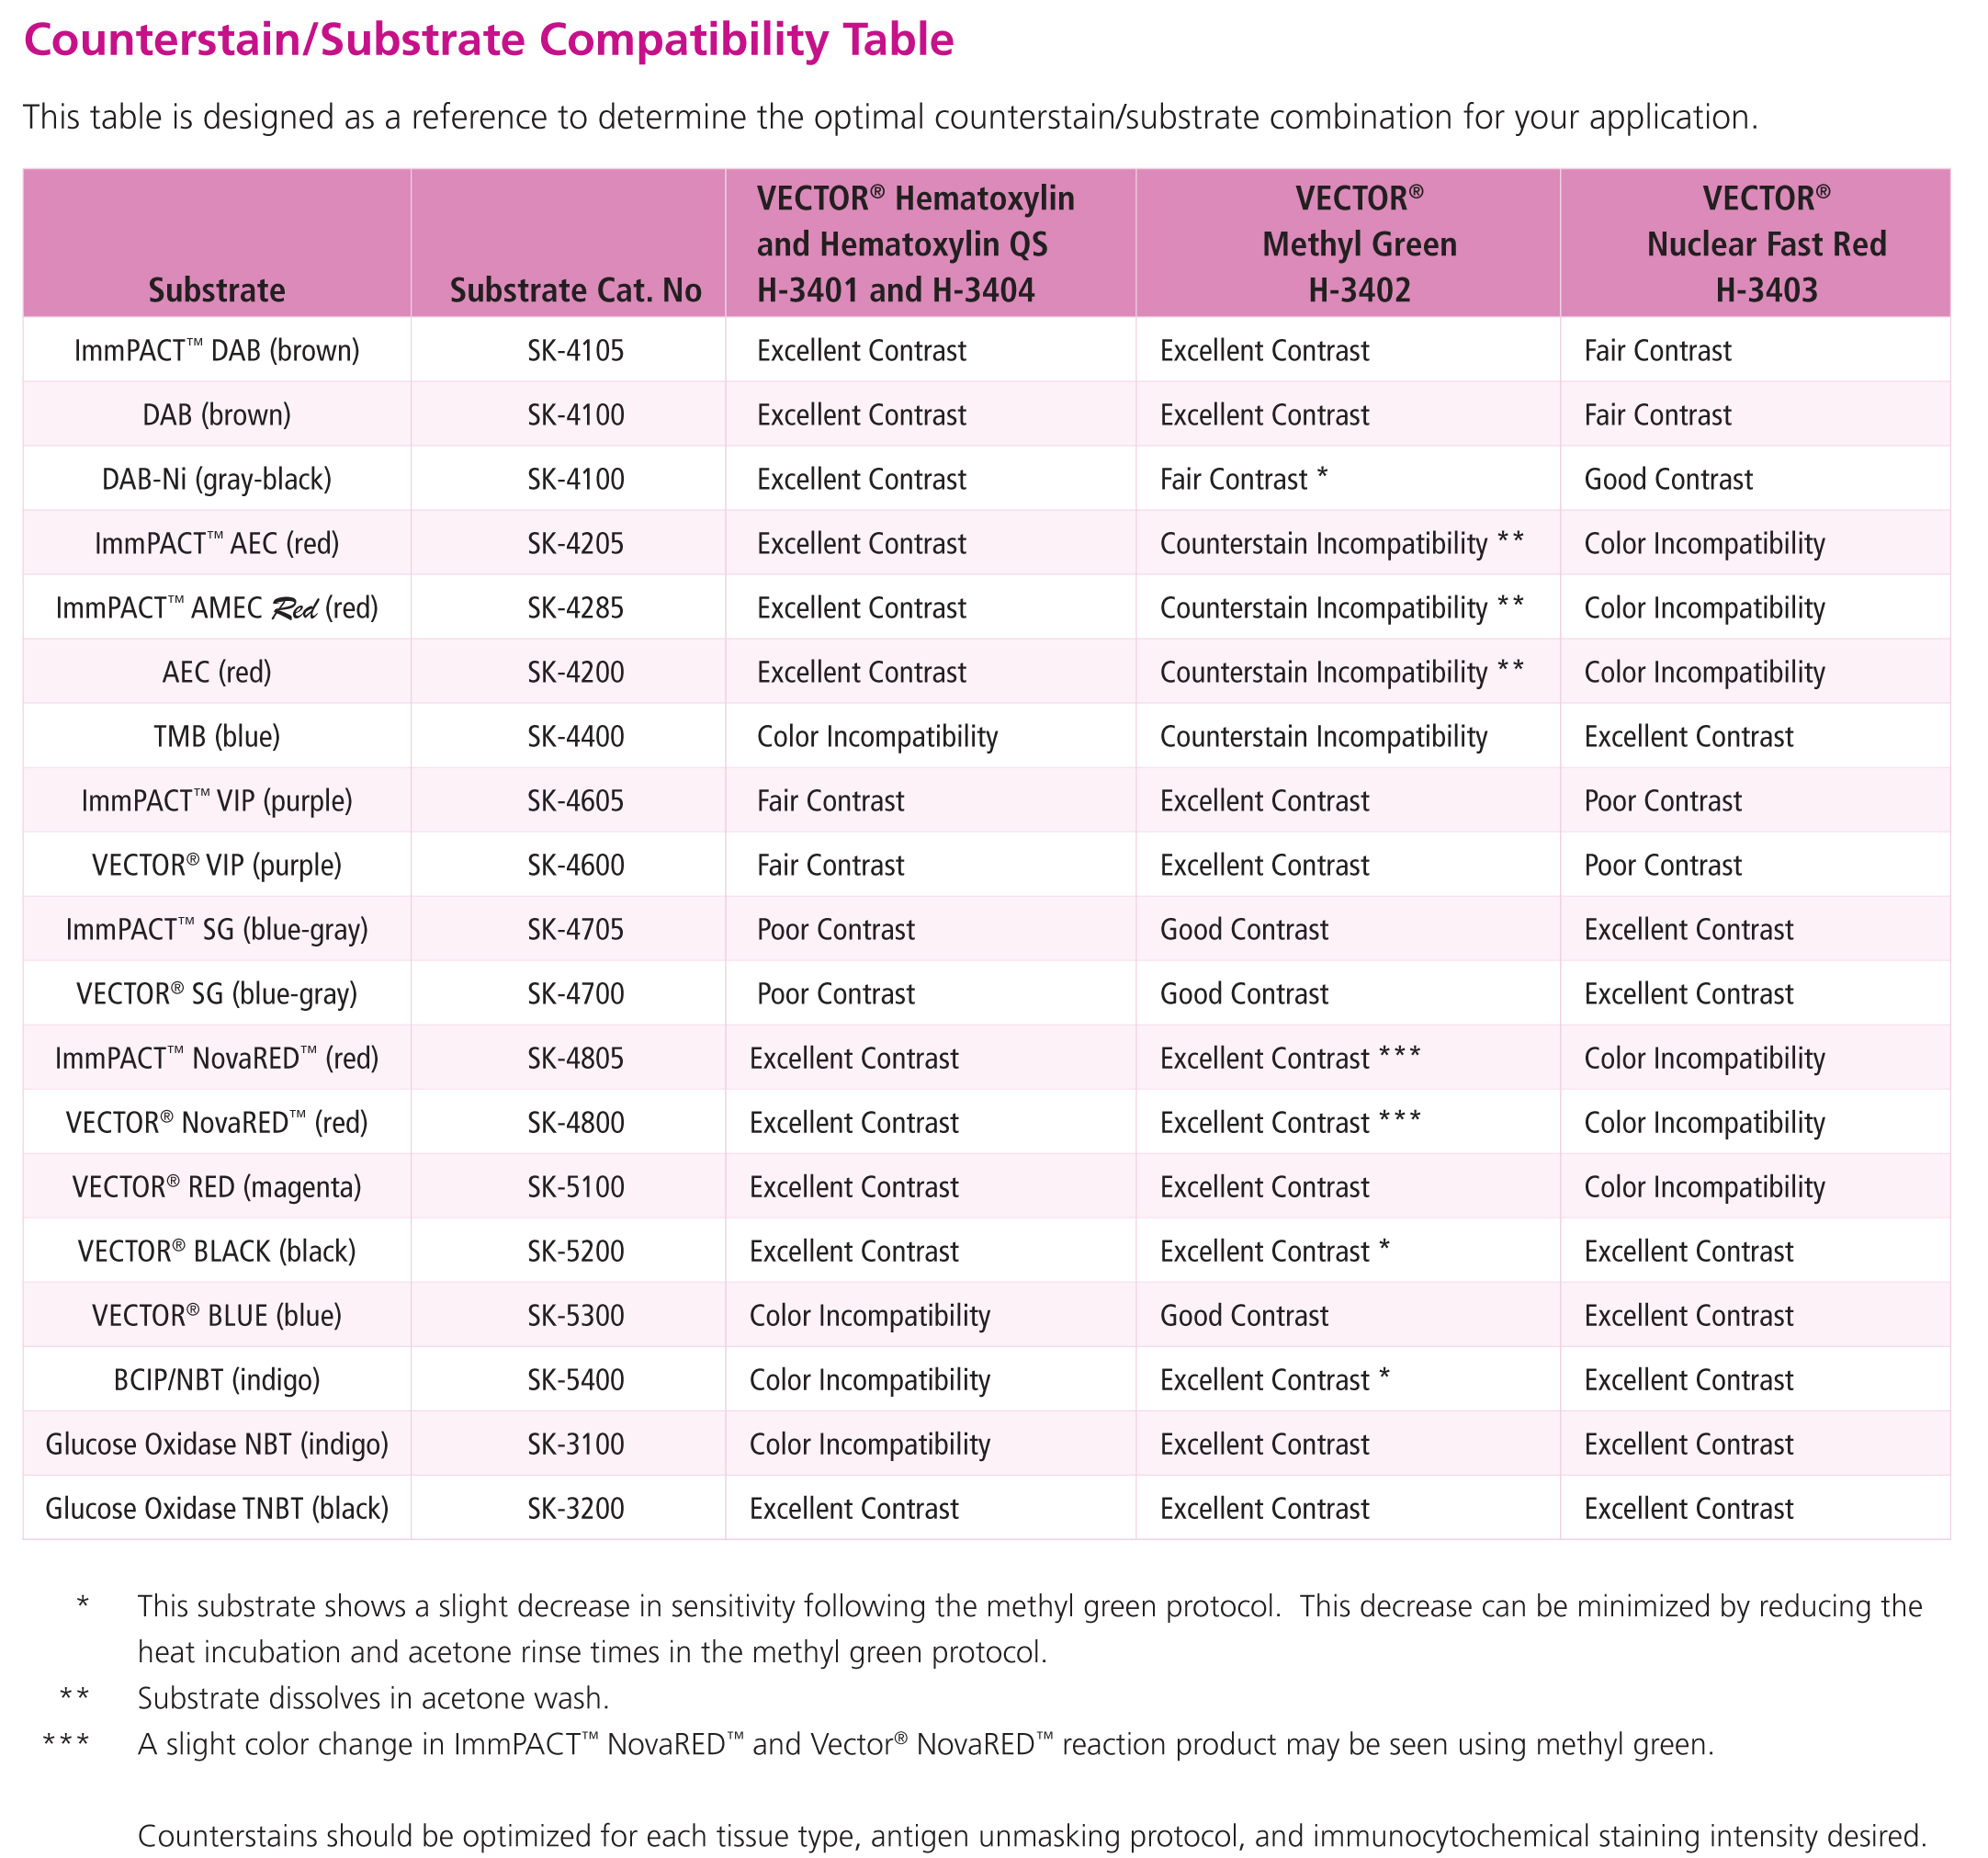 Counterstain Compatibility